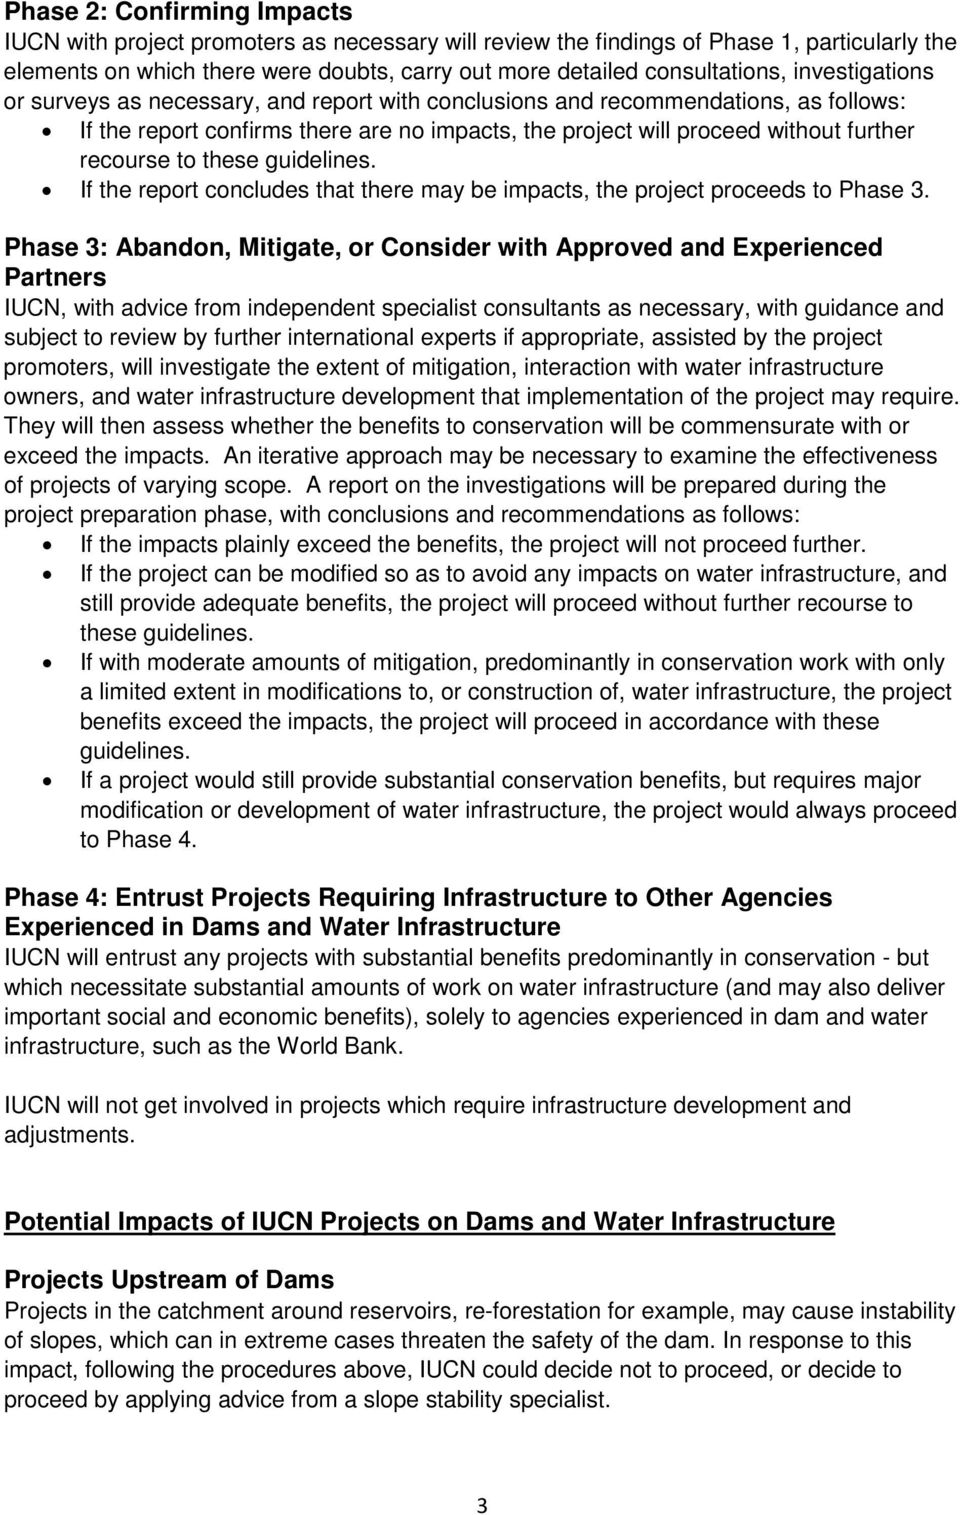 these guidelines. If the report concludes that there may be impacts, the project proceeds to Phase 3.